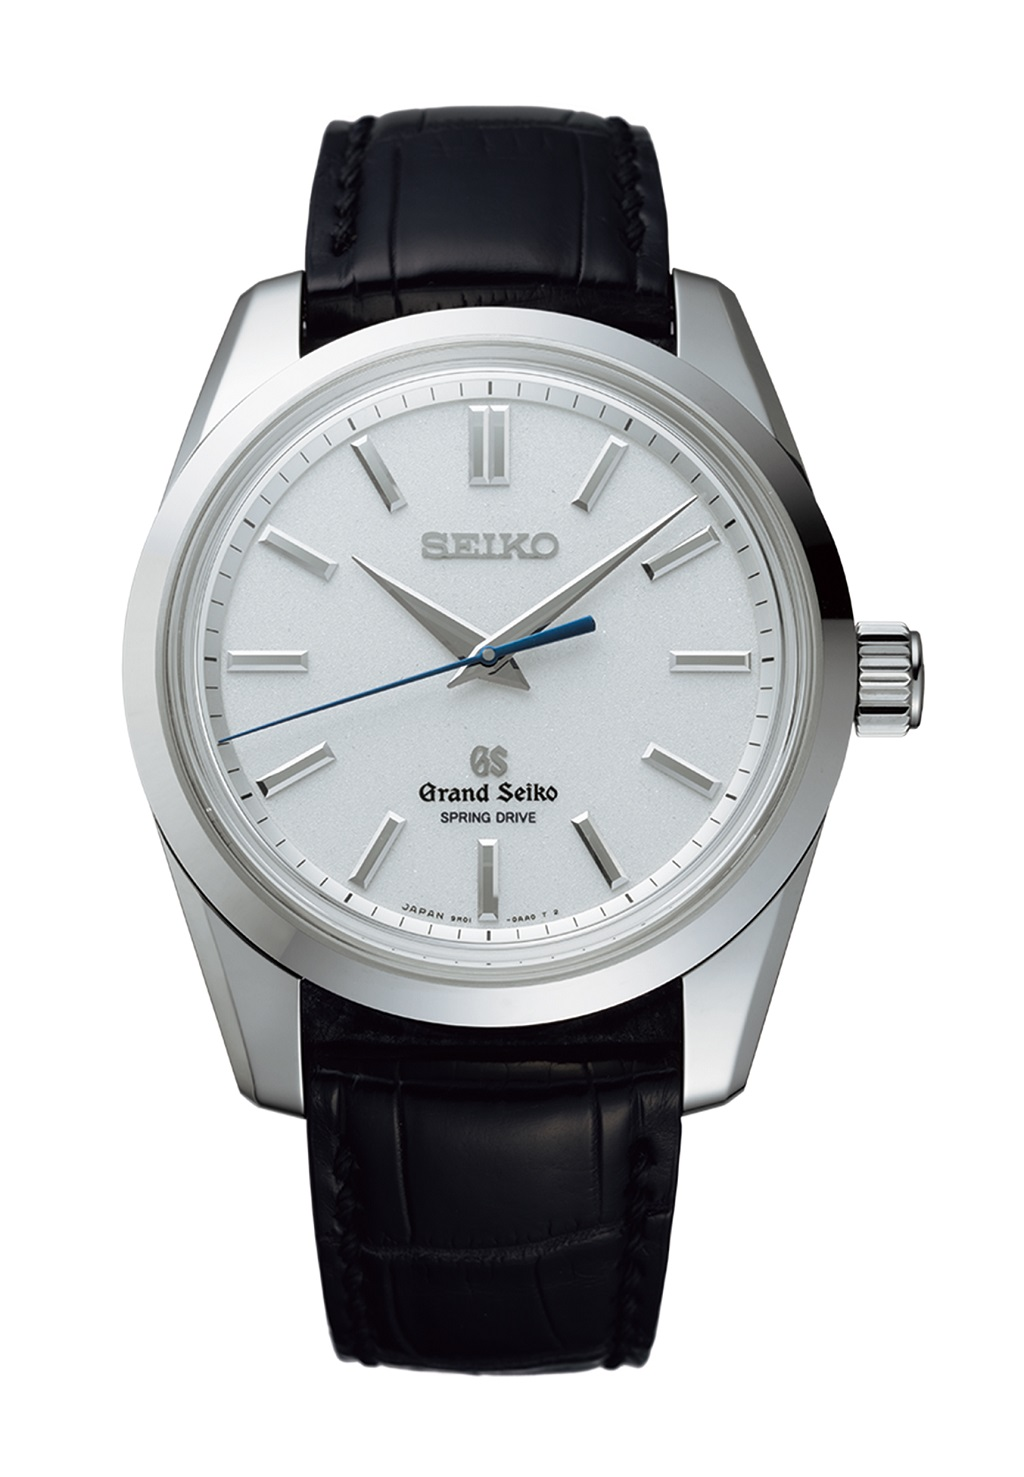 Up Close with the Elegant  Grand Seiko Spring Drive 8 Day Power Reserve Replica Watch